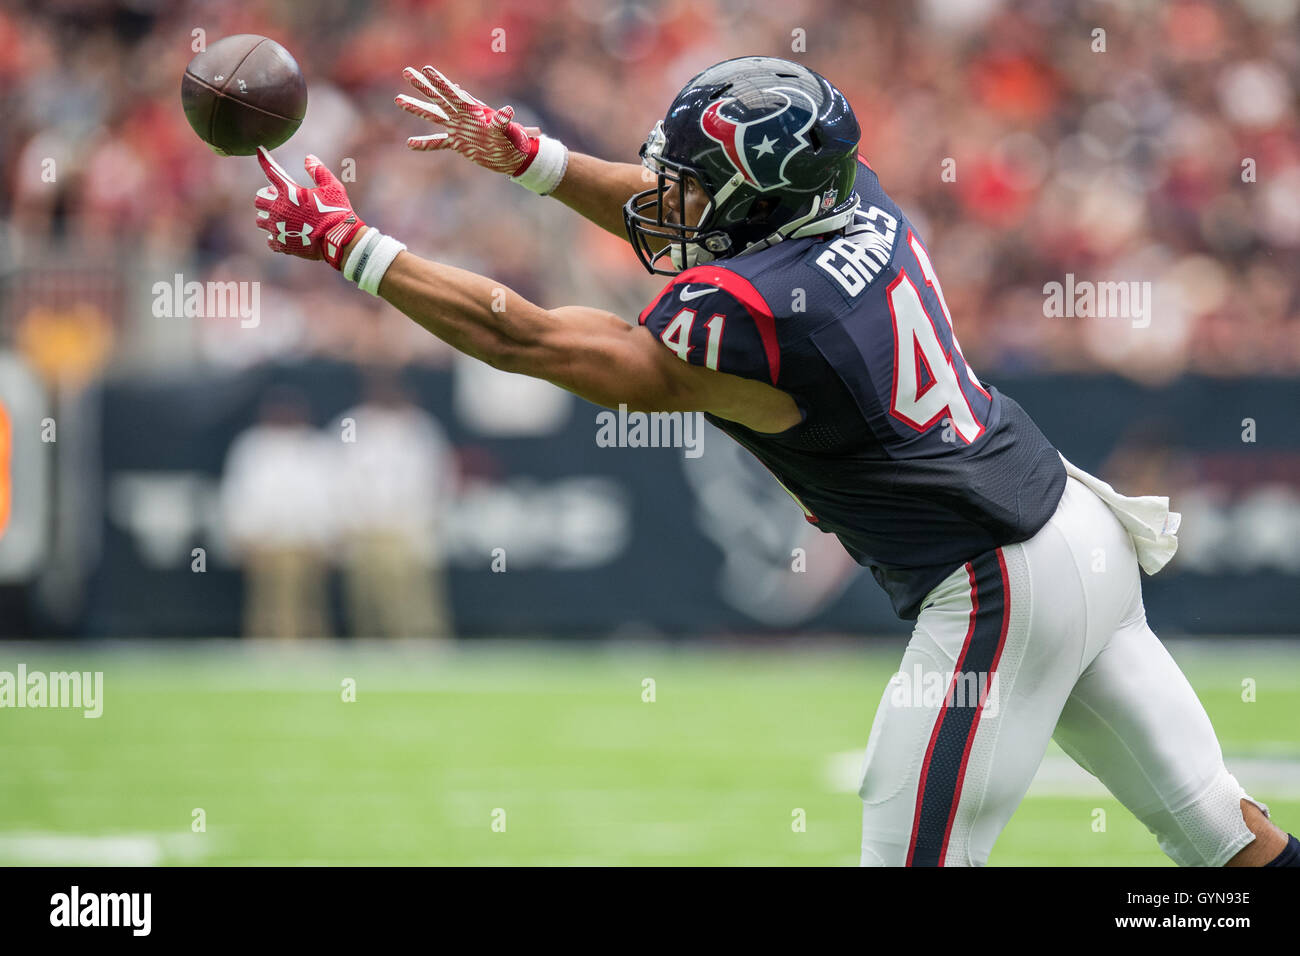 Houston, Texas, Stati Uniti d'America. Xviii Sep, 2016. Houston Texans running back Jonathan Grimes (41) i tentativi Immagini Stock